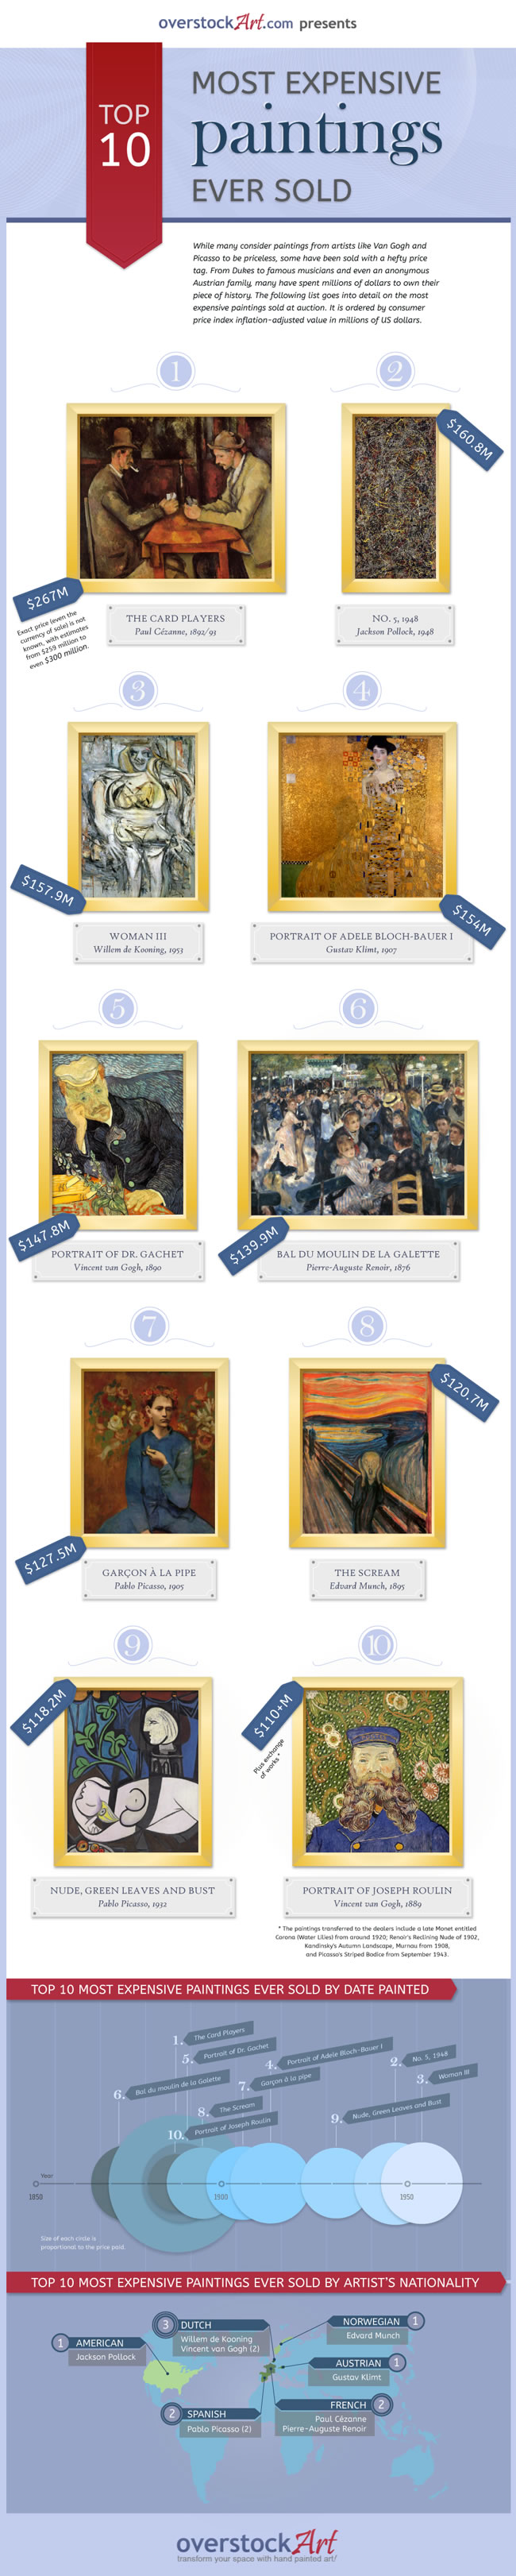 Most-Expensive-Paintings-Ever-Sold